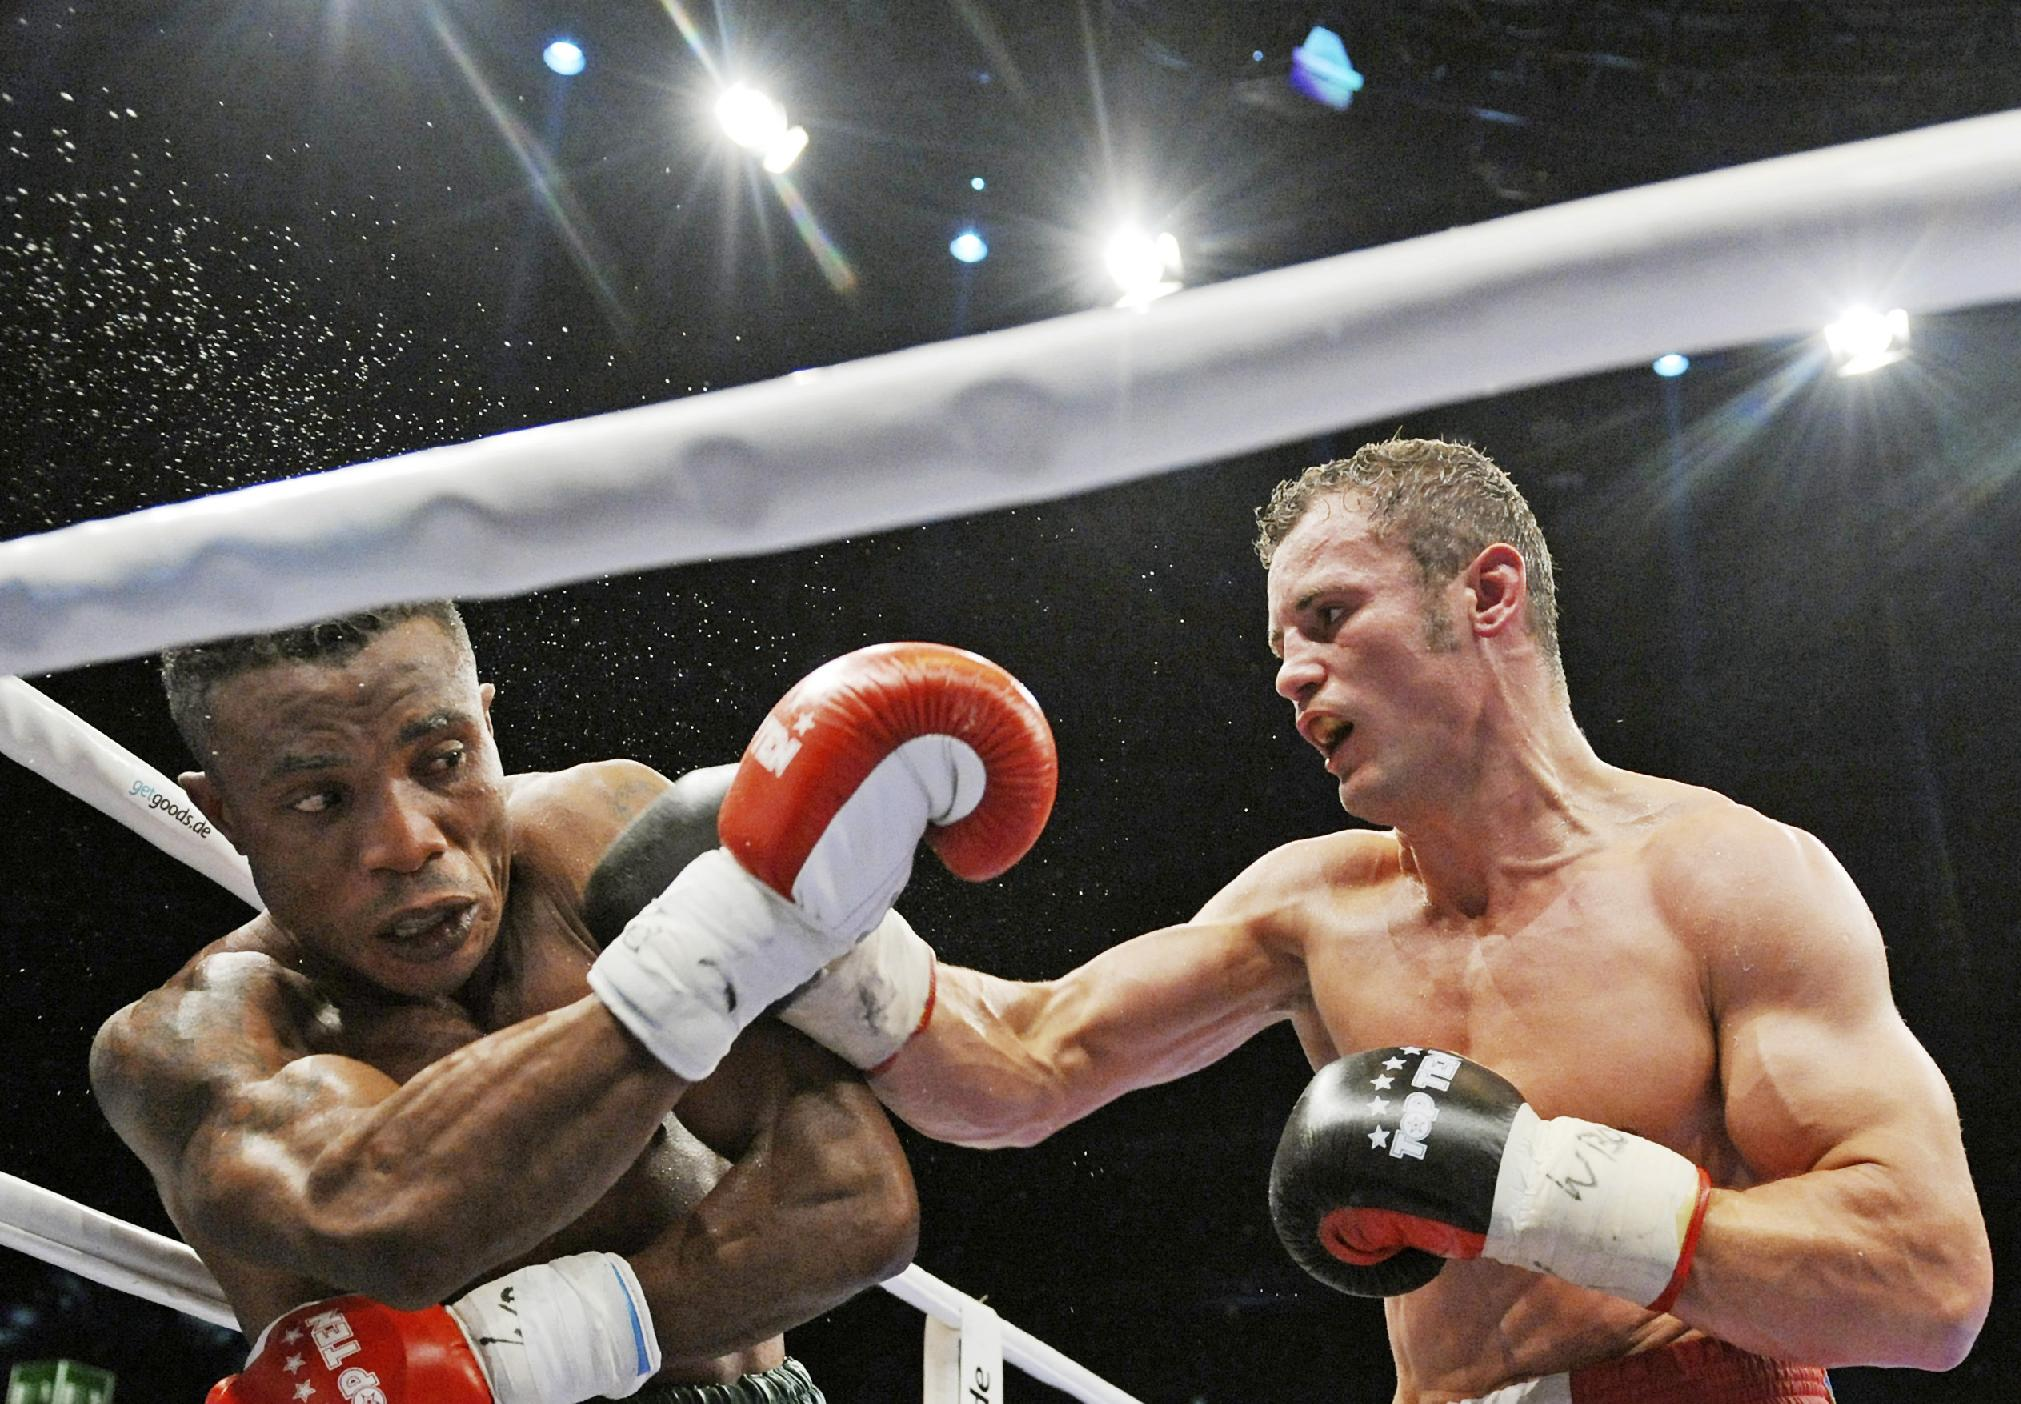 Robert Stieglitz of Germany, right, lands a punch to Isaac Ekpo of Nigeria during their WBO Super Middleweight Championship title bout in Leipzig, central Germany, Saturday, Oct. 19, 2013. Stieglitz retained his title